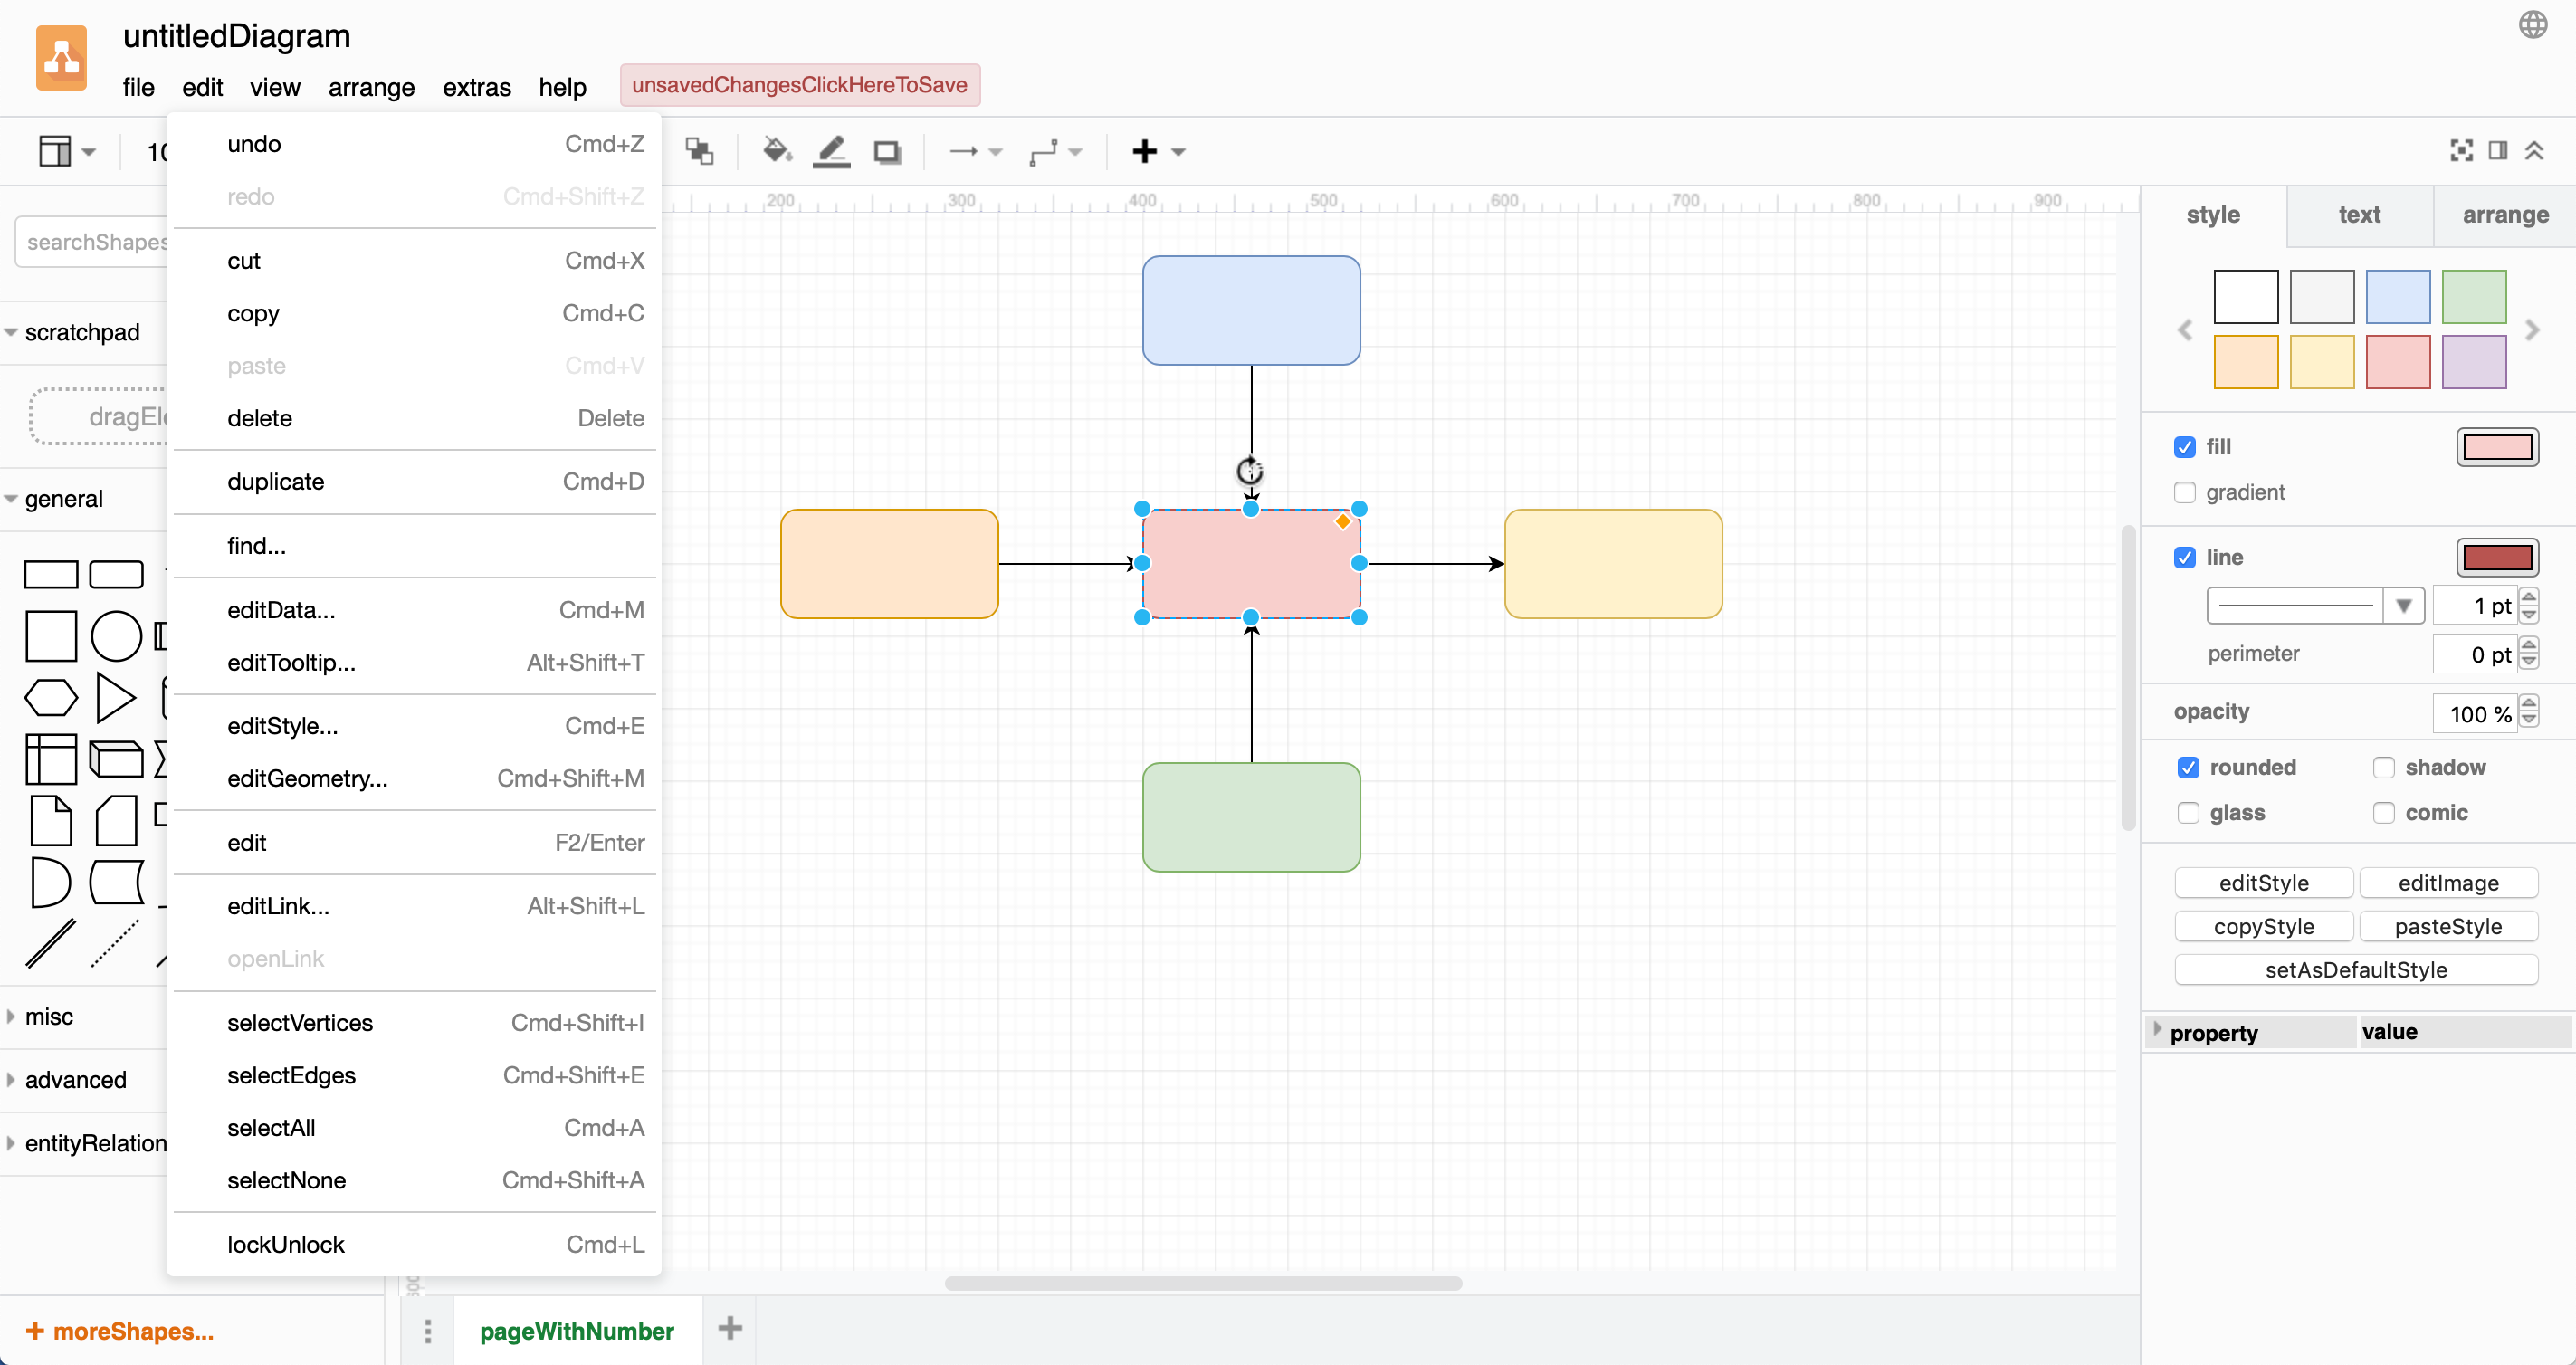 See where the strings appear in context in the diagrams.net interface to help you translate